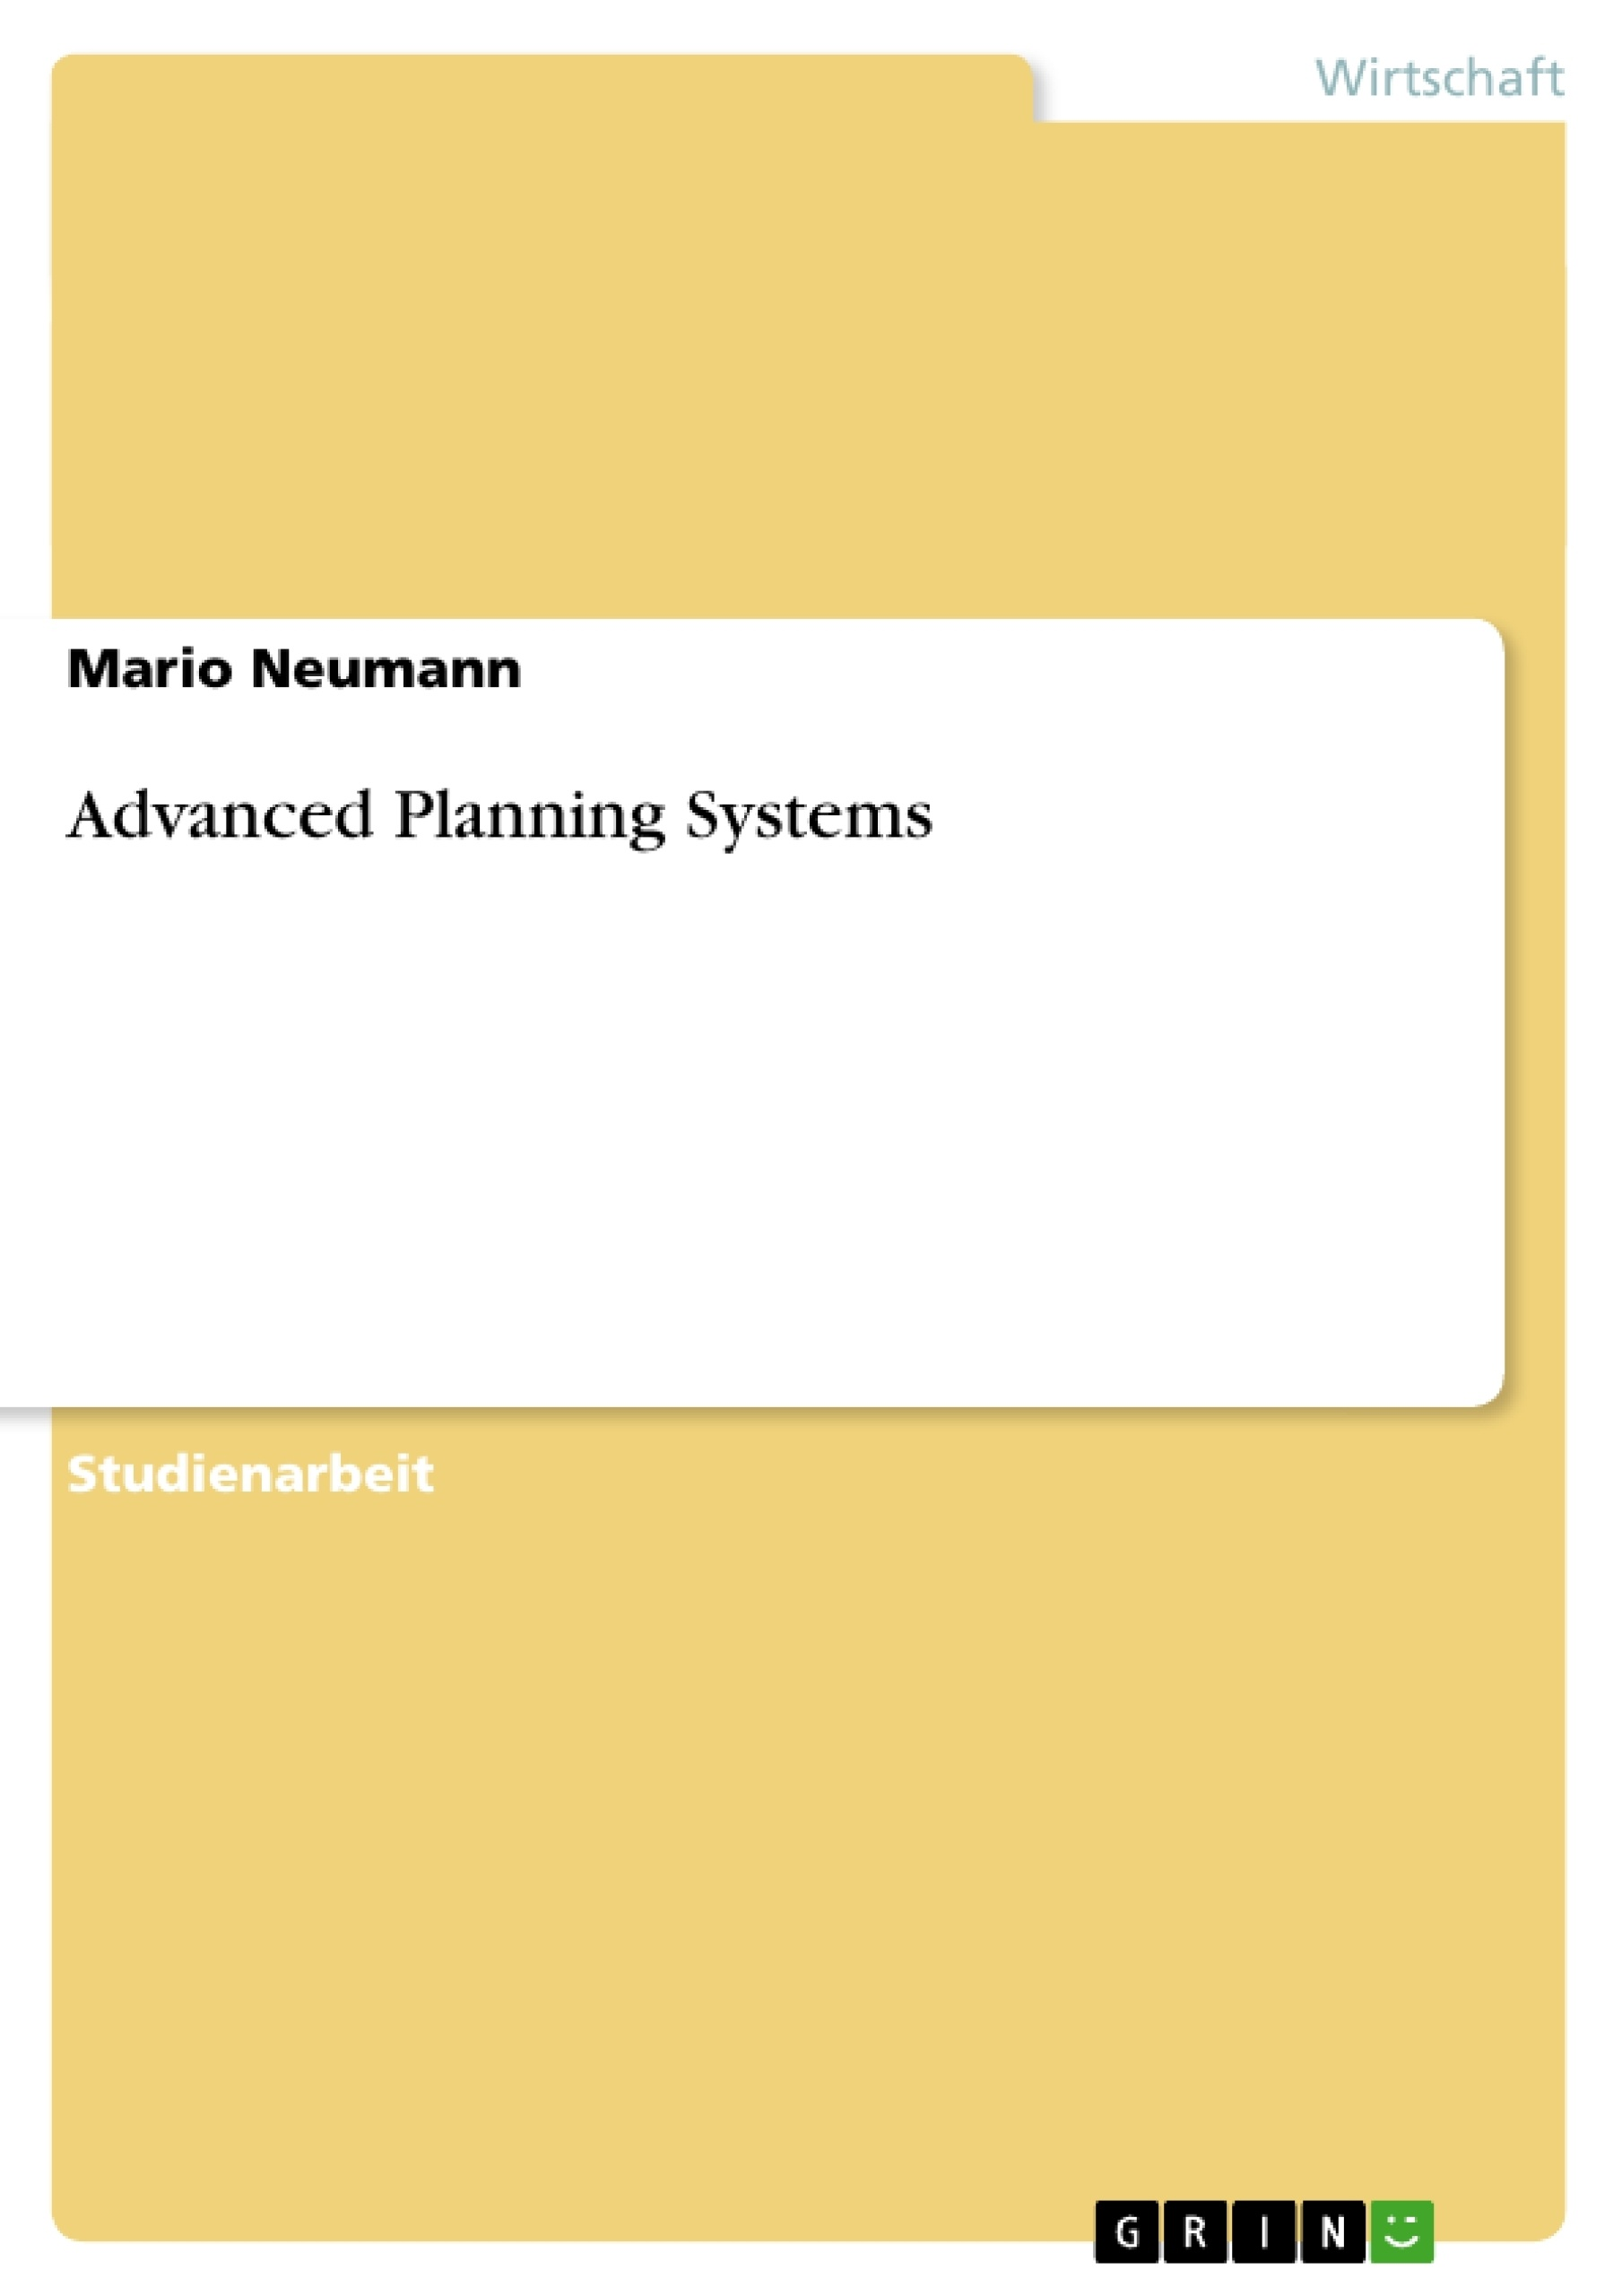 Titel: Advanced Planning Systems